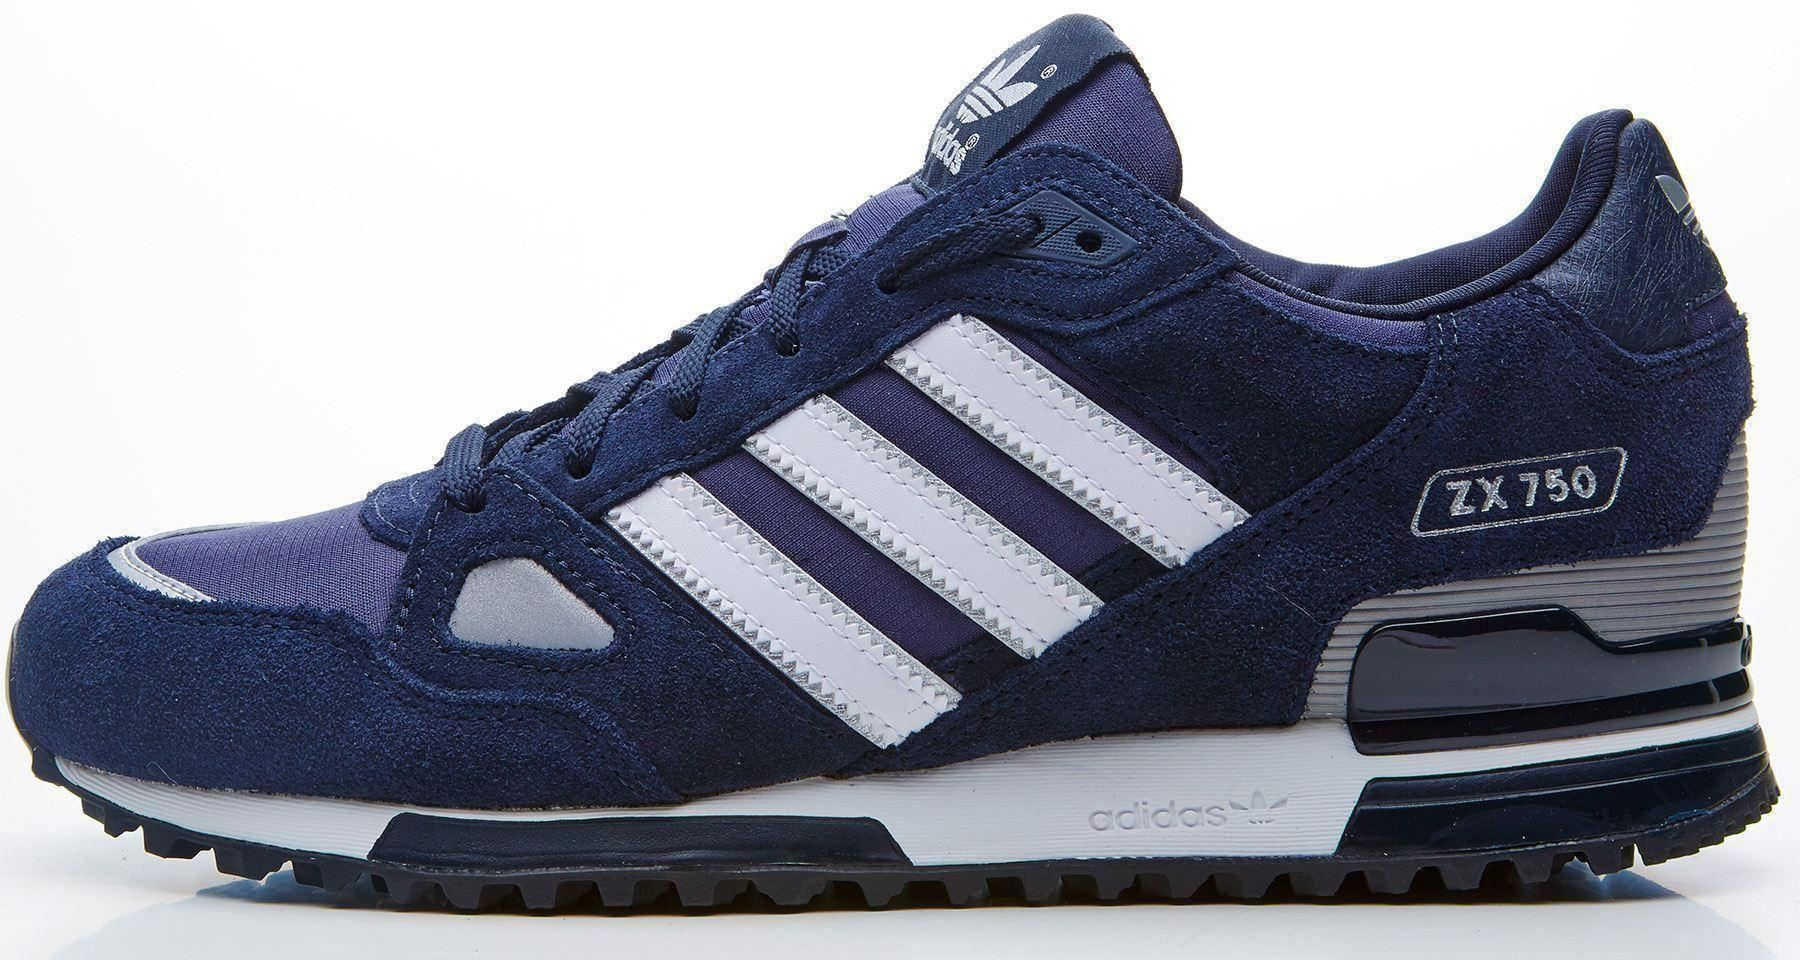 hot sale online 47f13 f08a7 ... Men Adidas ZX 750 Suede Retro Vintage Look Trainers in All Sizes ...